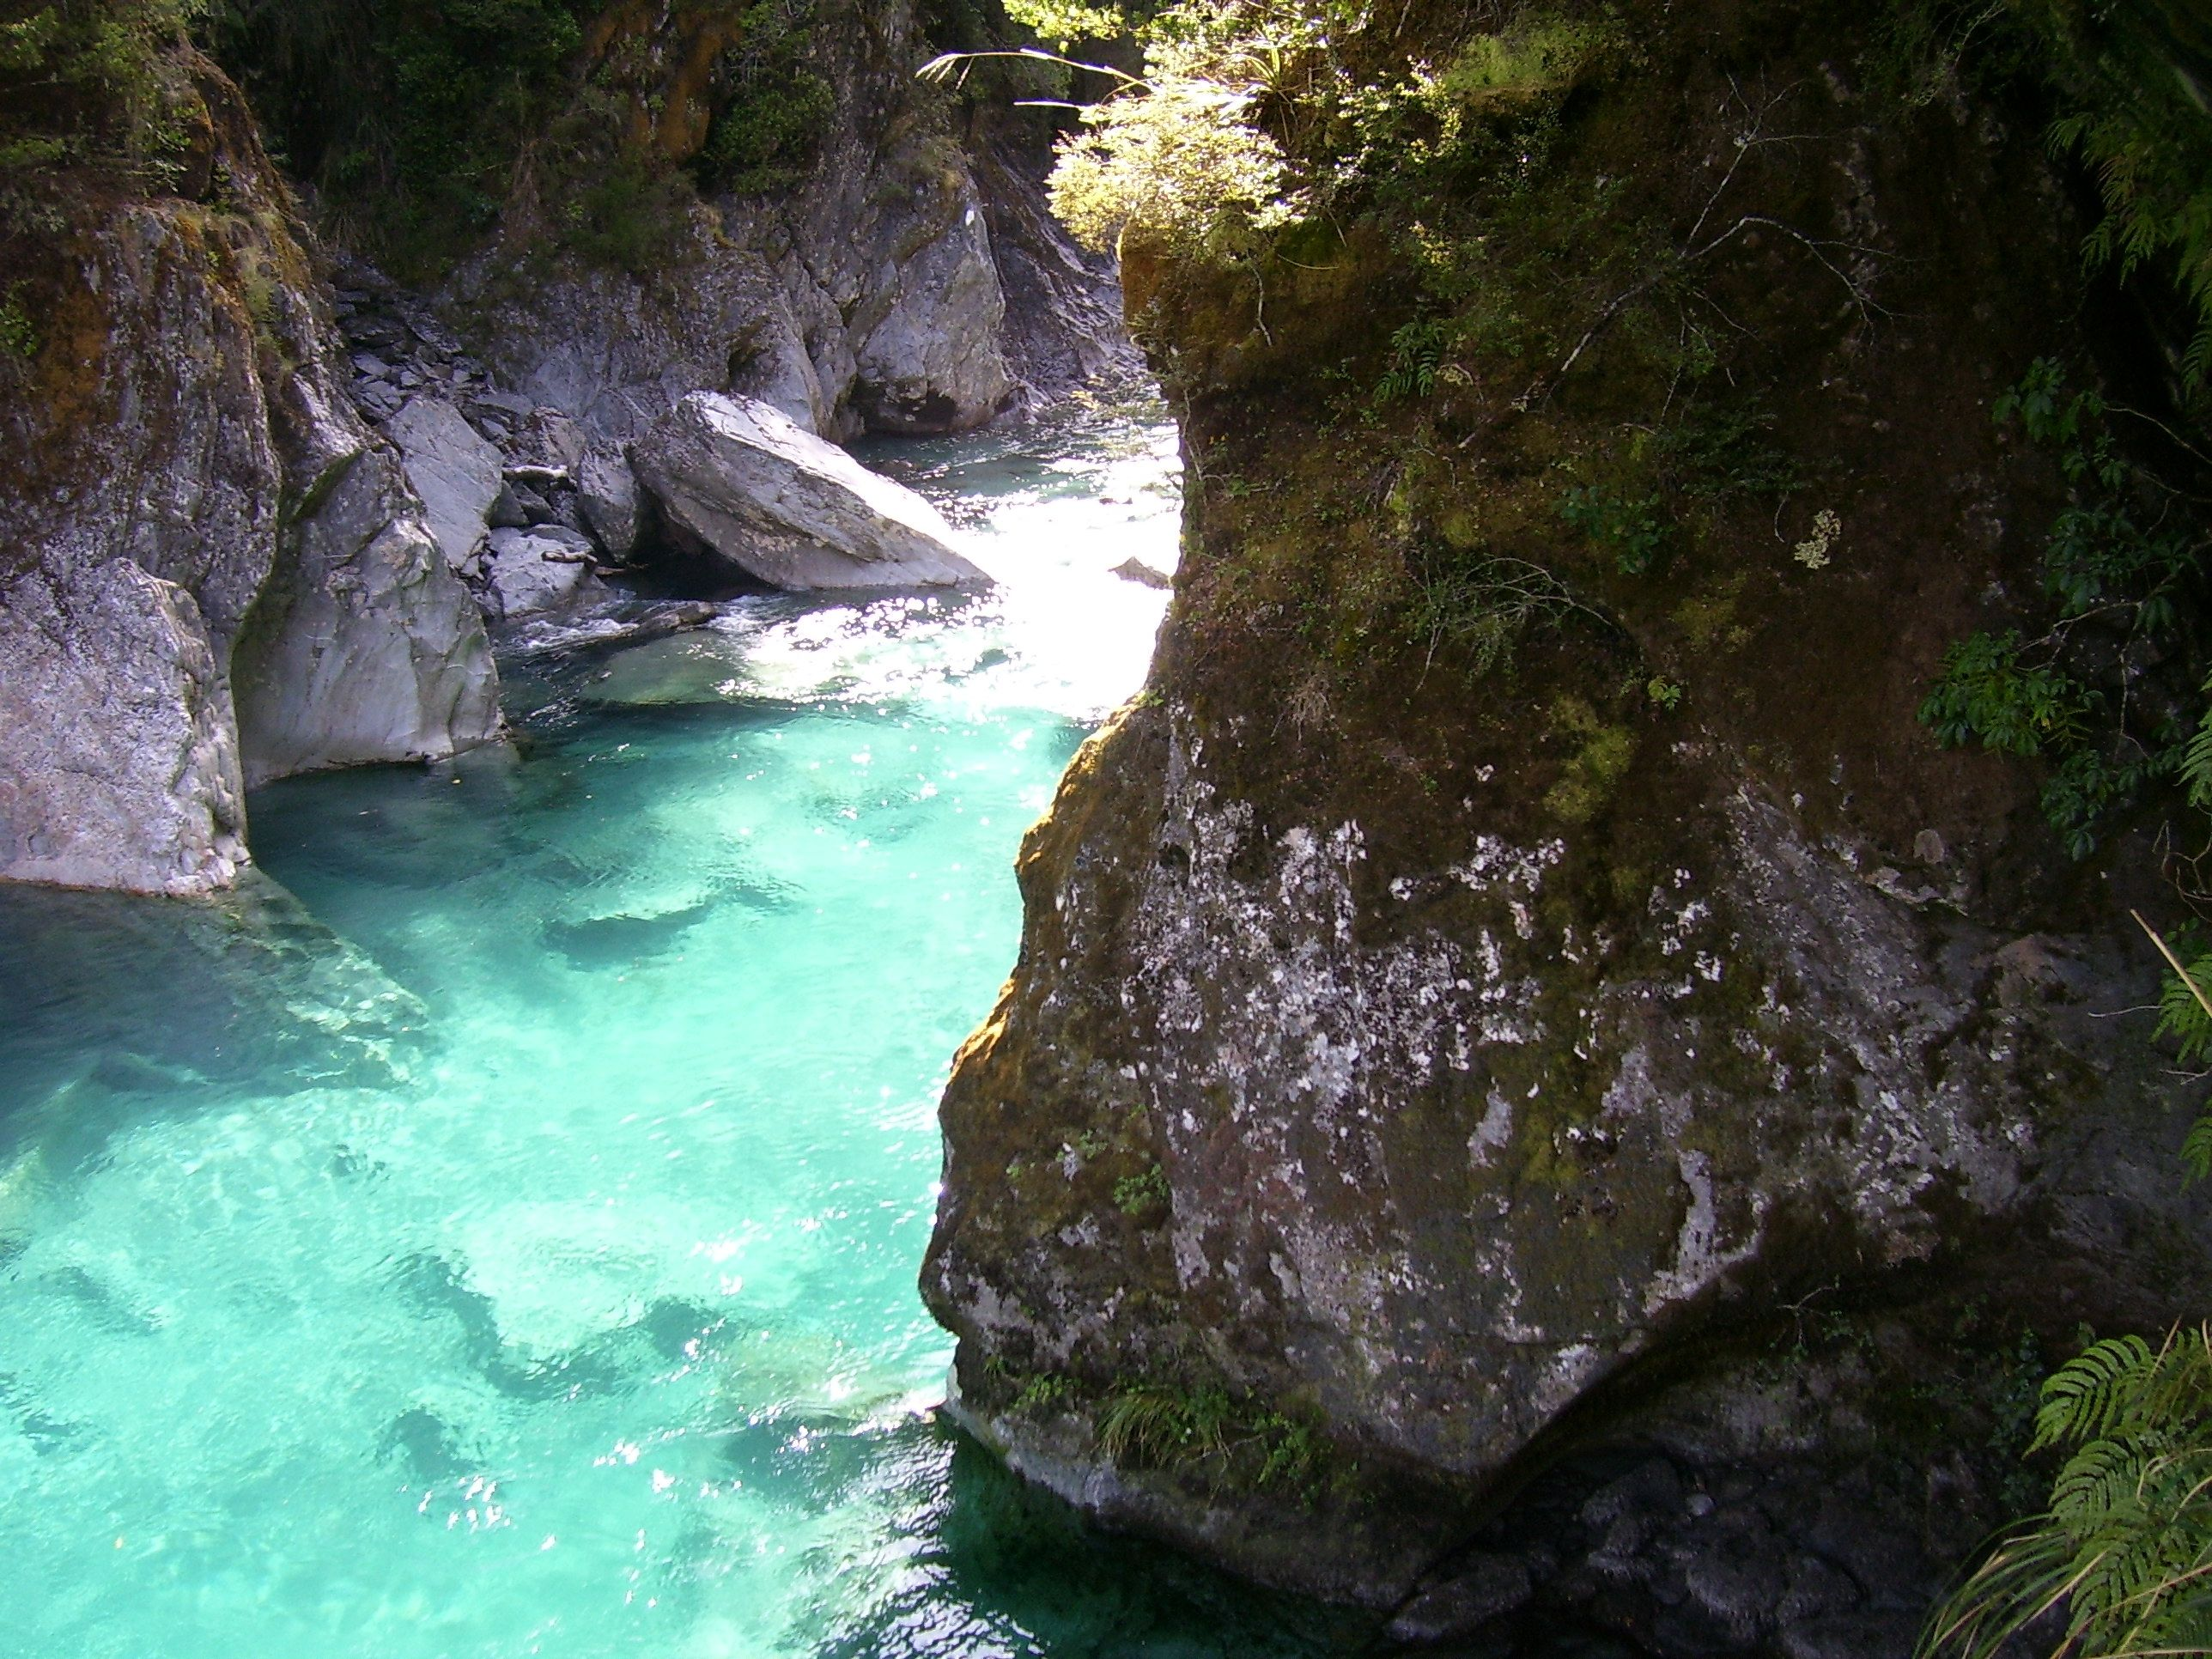 Spring fed rivers in New Zealand showing an ice blue color